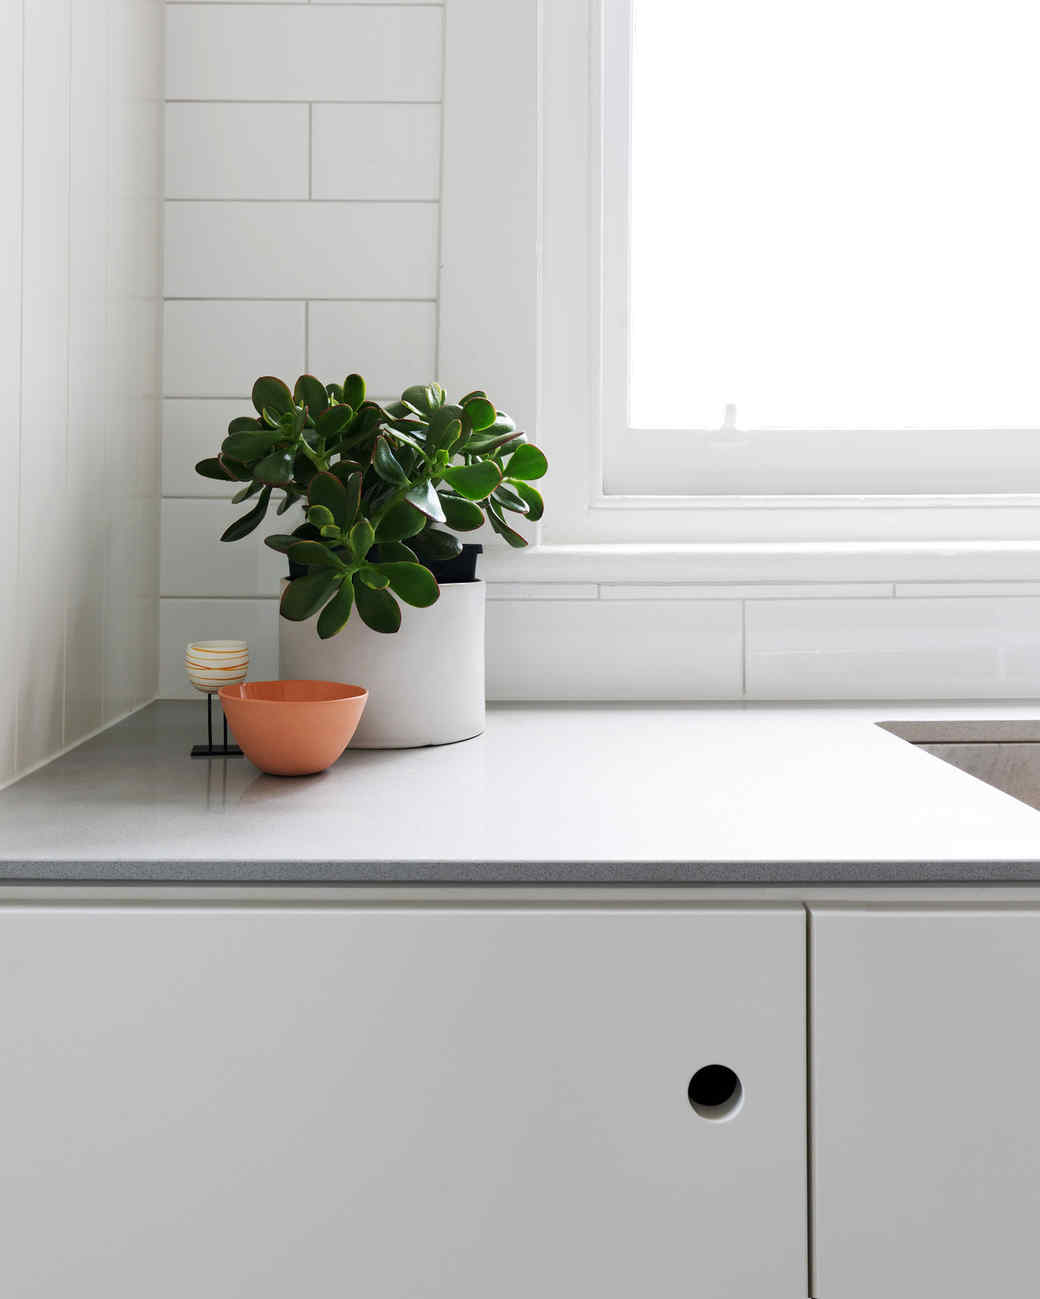 How to Pick the Best Kitchen Countertop Material for Your Lifestyle